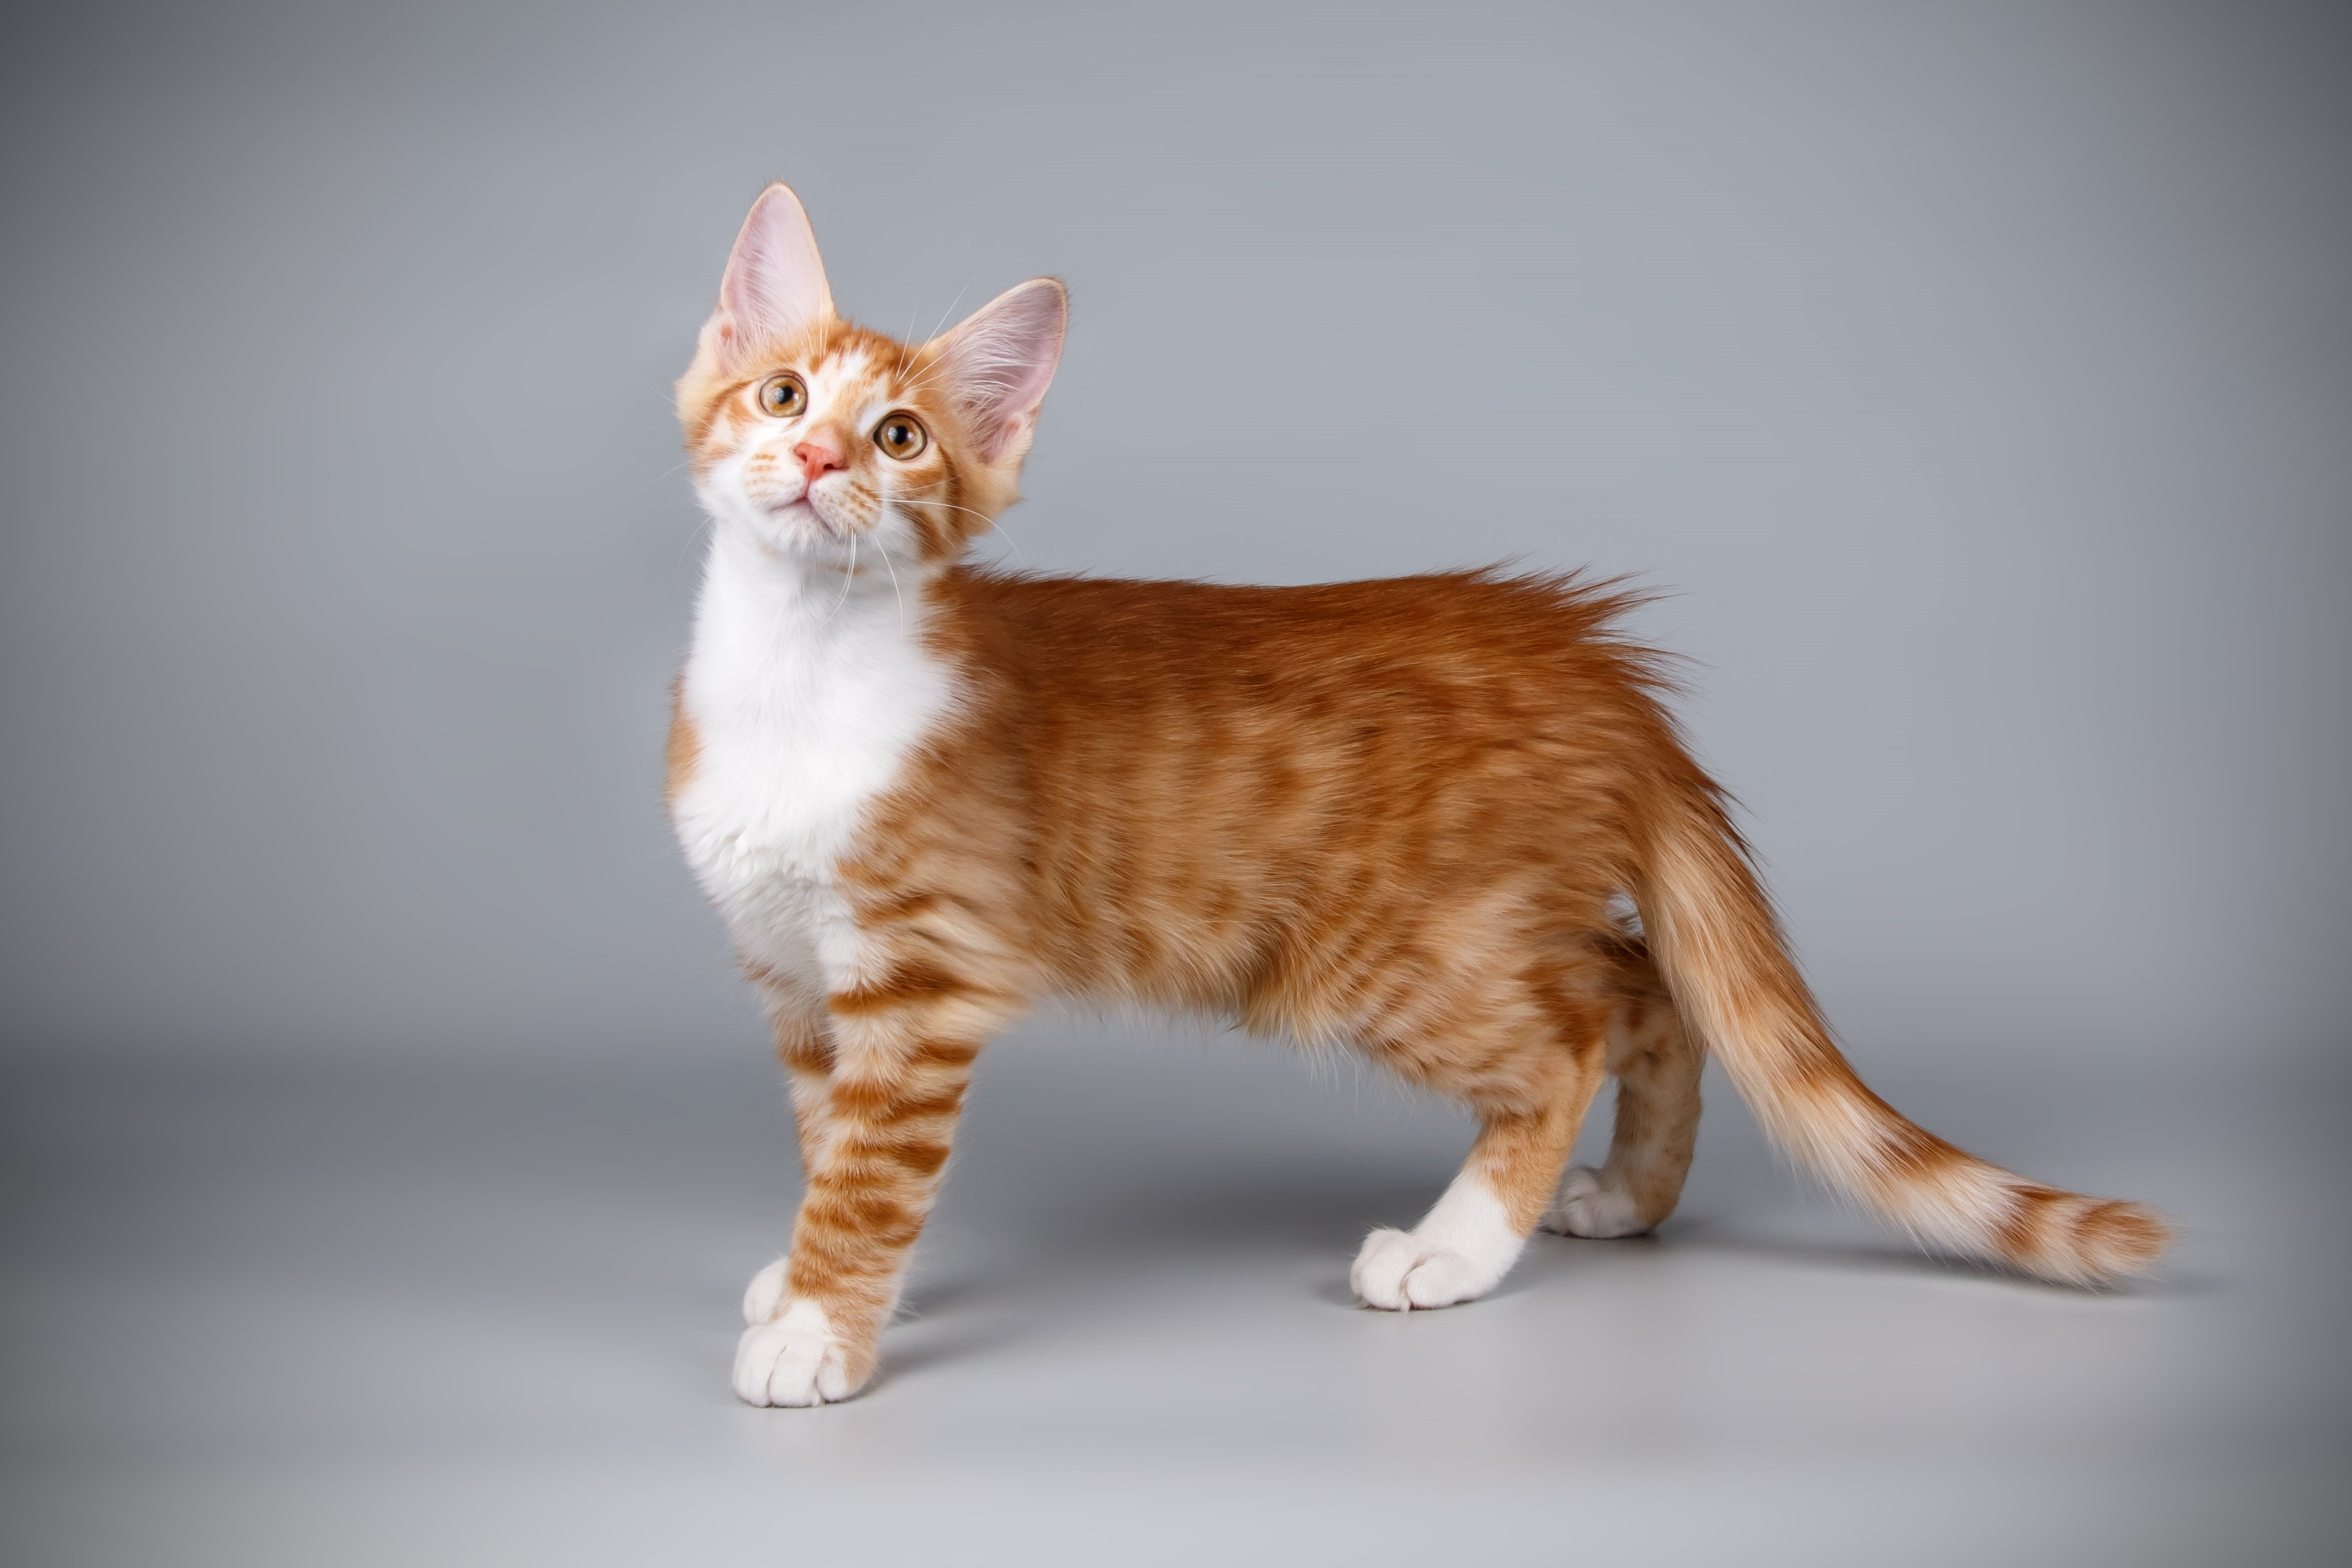 Aphrodite Giant Cat Breed Pictures